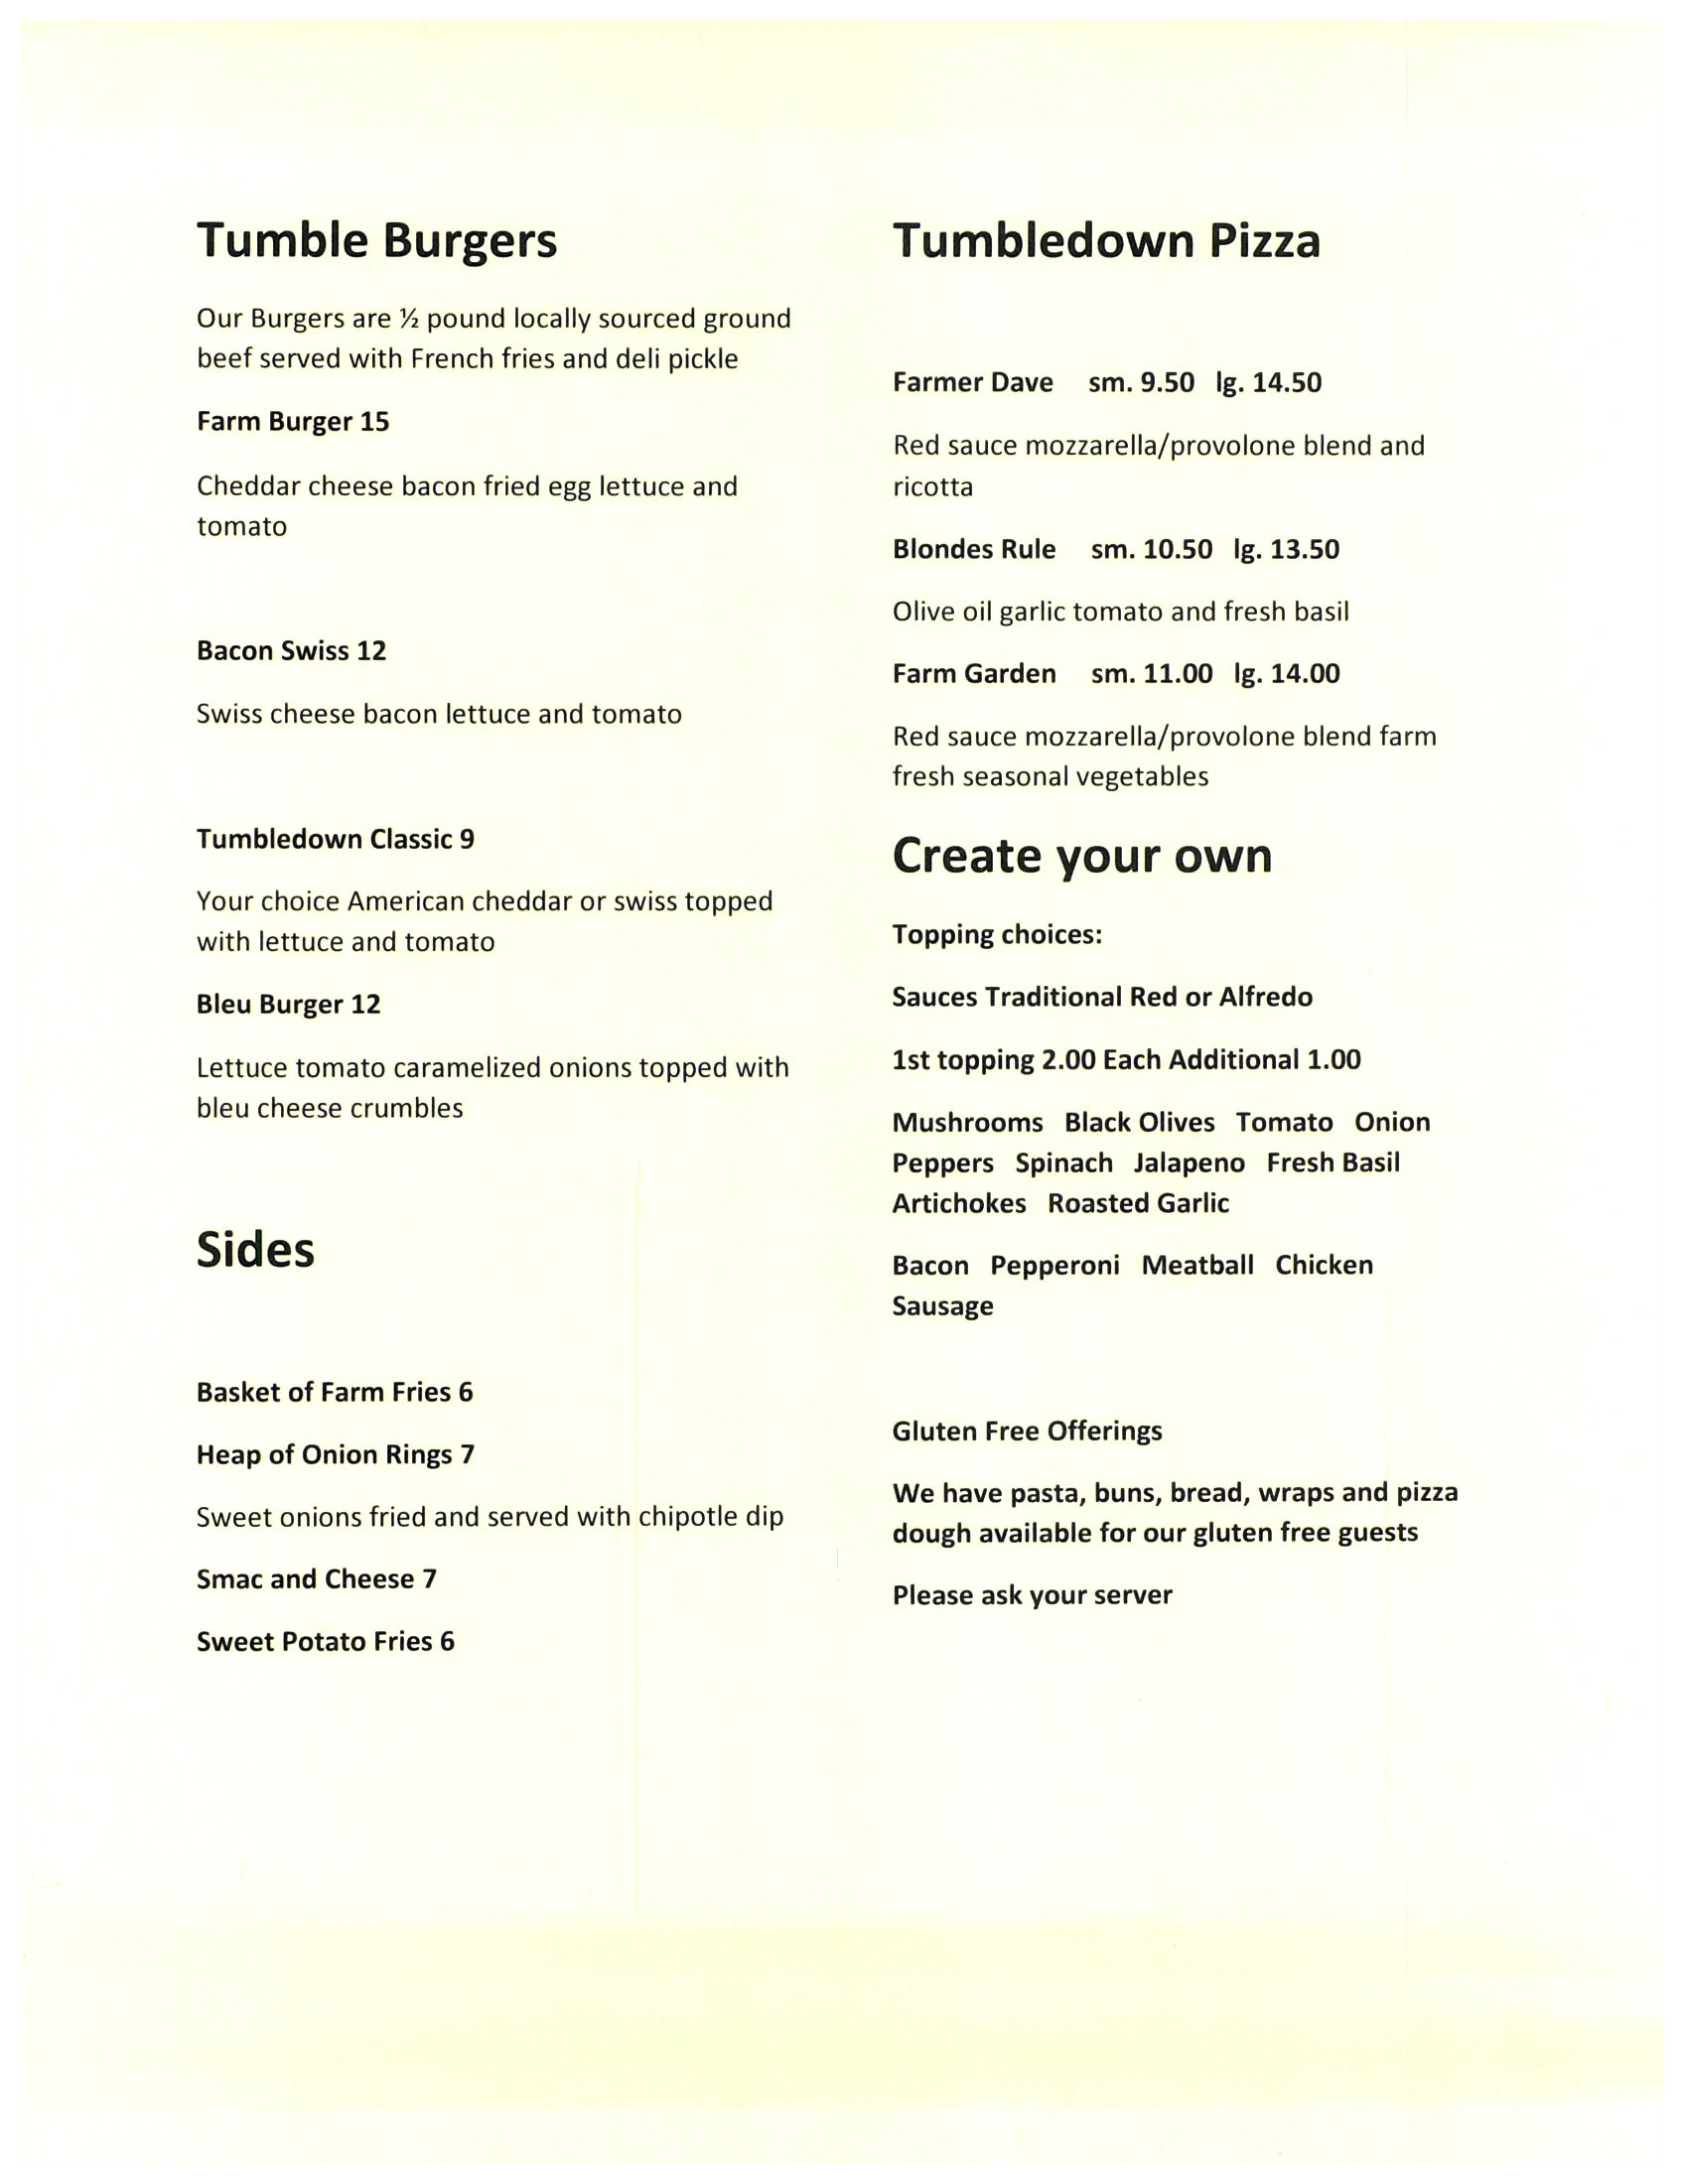 Tumbledown Farms - Menu4